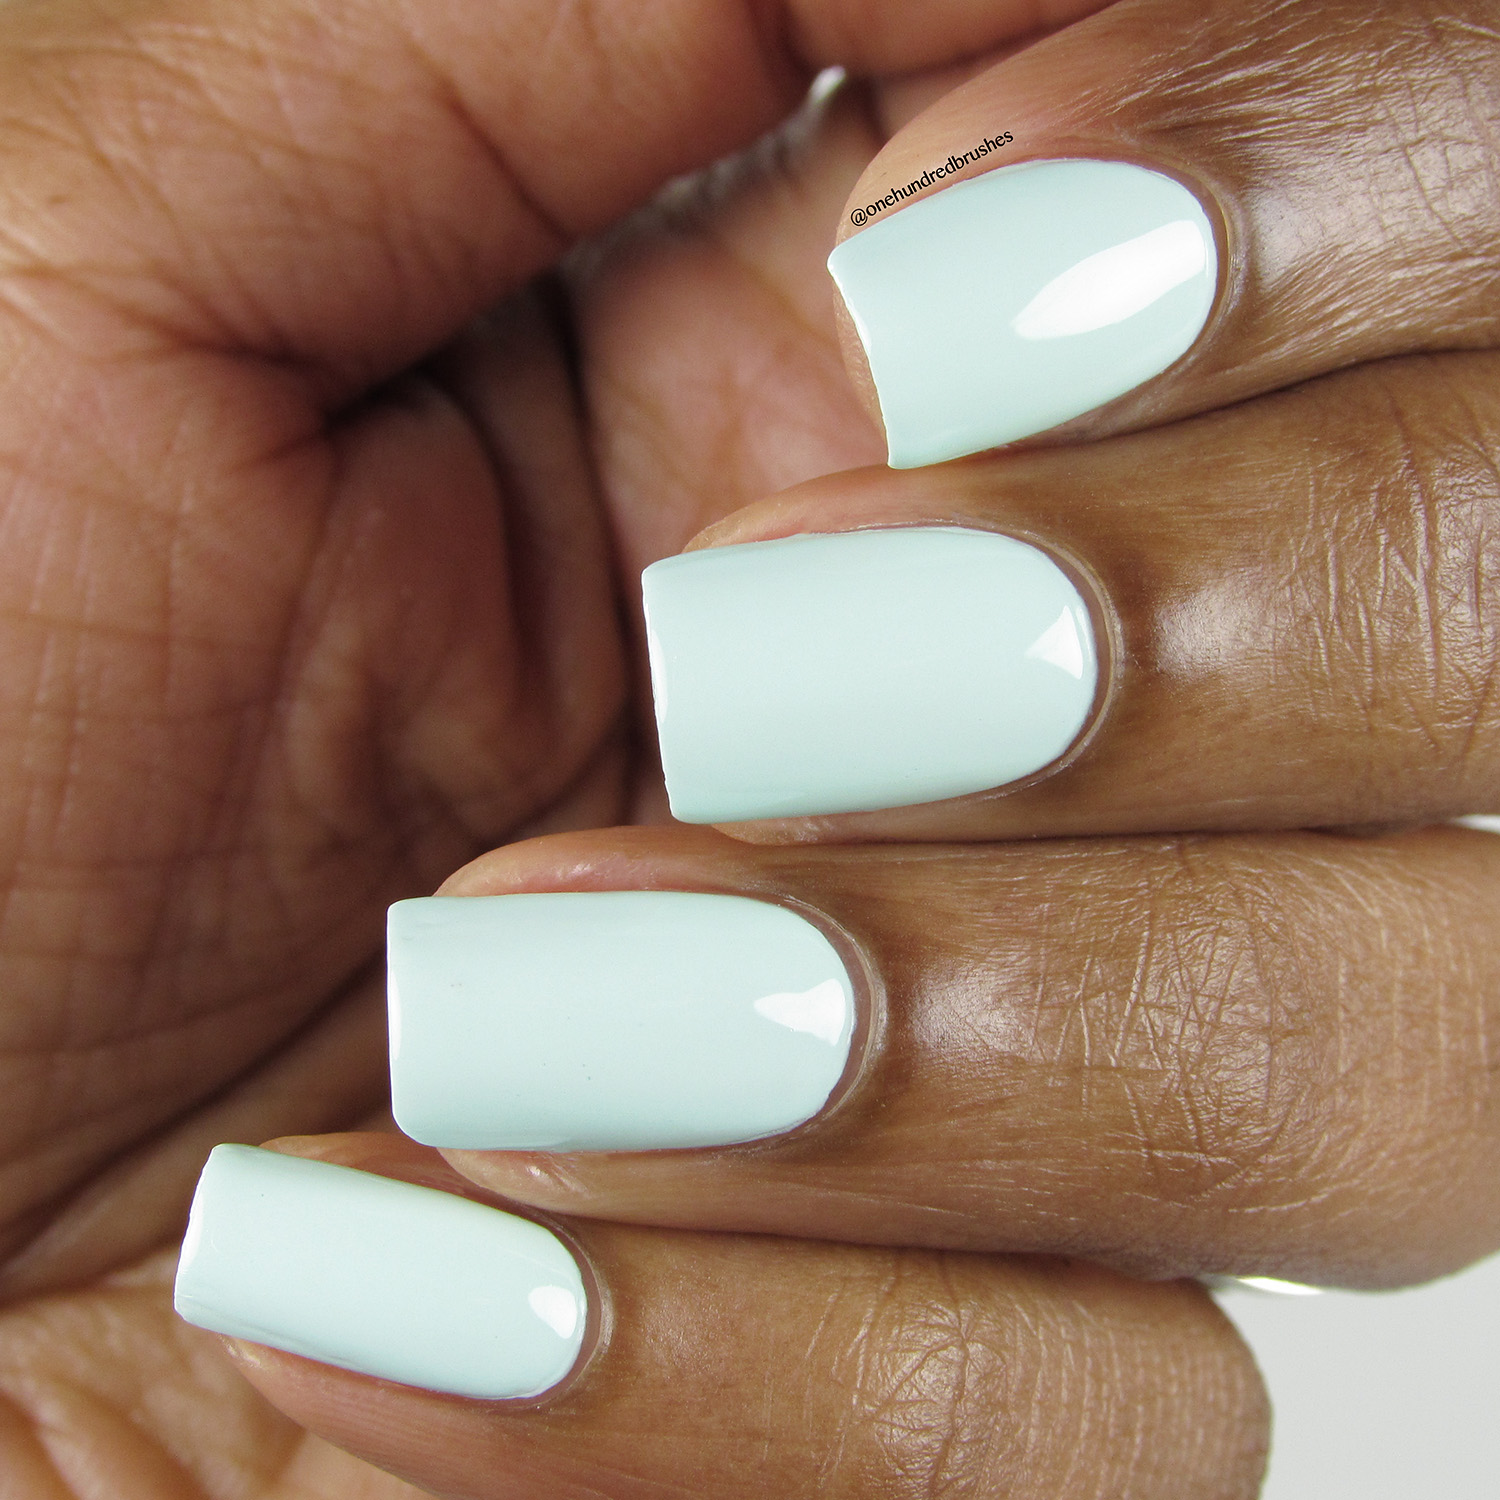 Empower-Mint - Angle - Heroine NYC - Dream Cremes - pastel - mint